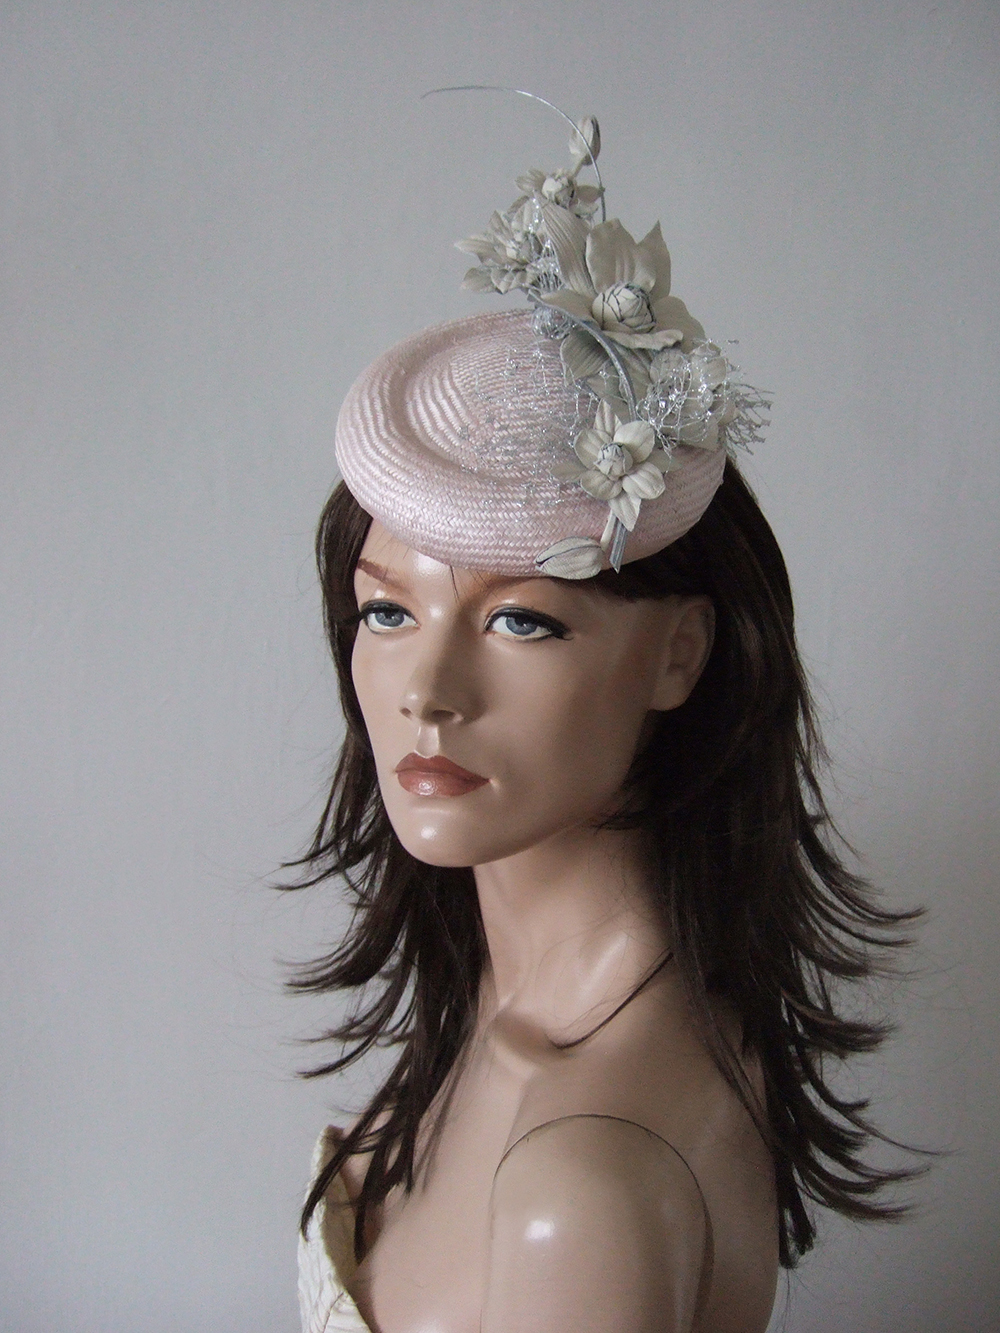 Floral Wedding Hats for Hire. Justine Bradley Hill Millinery. Royal Ascot Hats 2020. Designer Hats for Hire 2020. Pretty Hats for Royal Ascot. What to wear for Royal Ascot 2020. Mother of the Bride Hats 2020. Mother of the Bride Hat Hire 2020. What to wear to the Races 2020. Hats for Ladies Day the Races 2020.